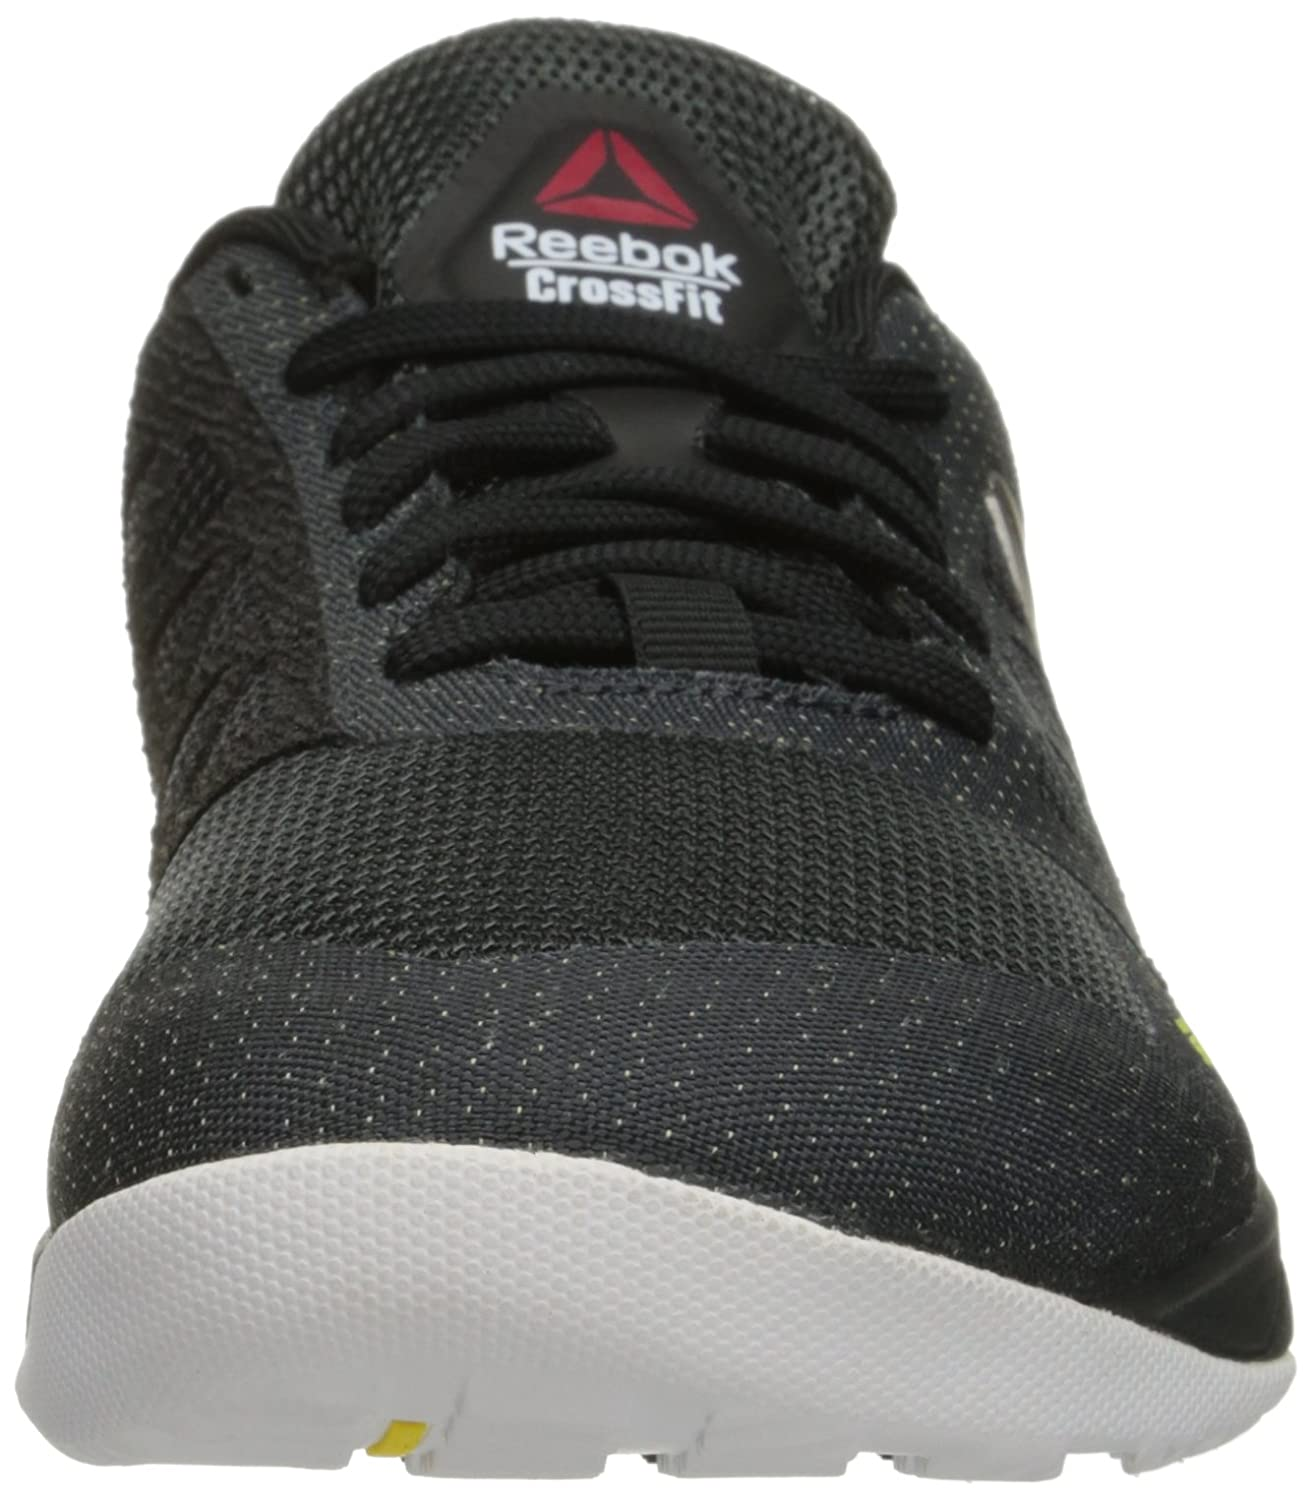 reebok crossfit shoes high top. amazon.com | reebok men\u0027s crossfit nano 6.0 cross-trainer shoe track \u0026 field cross country shoes high top